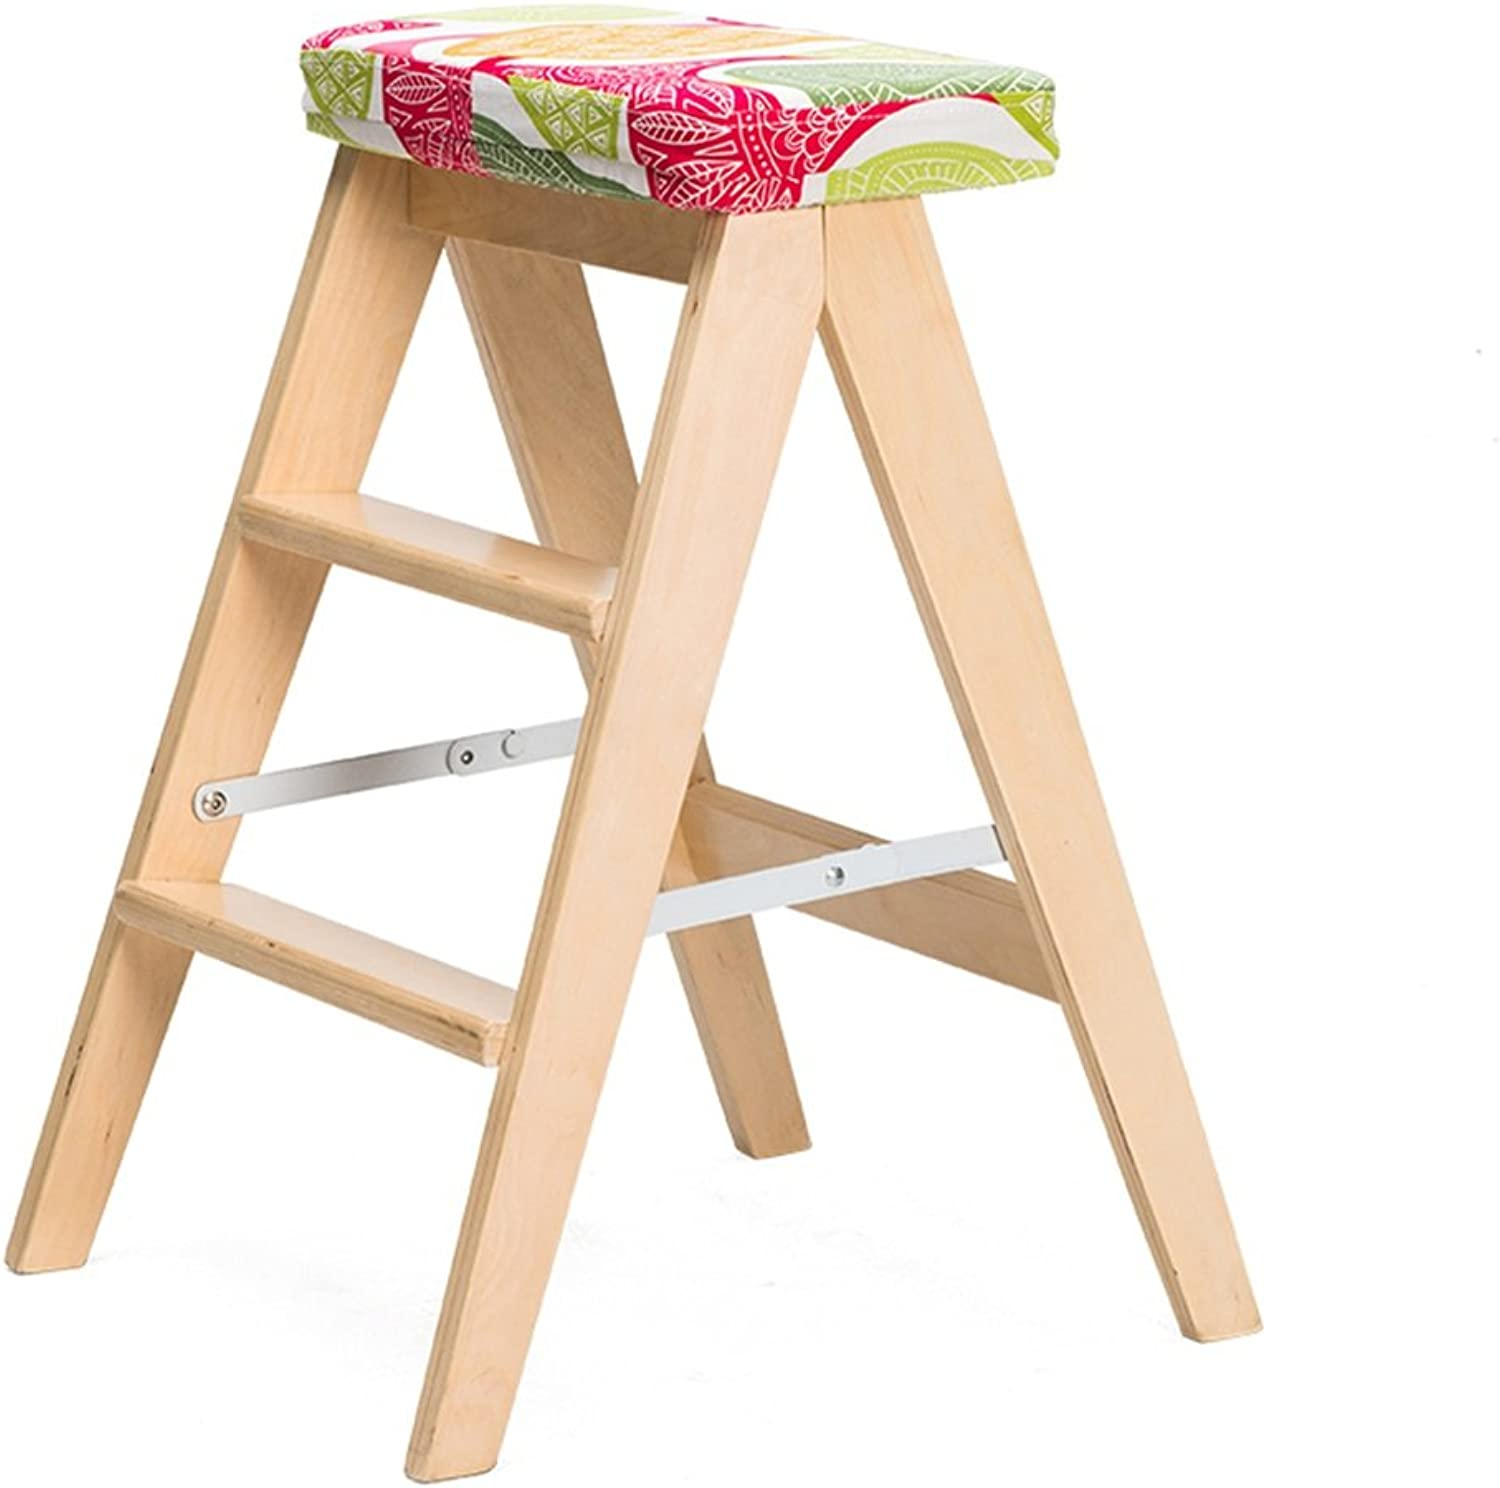 Wooden Ladder Chair High Stool Breakfast Stool Barstool Kitchen Home & Commercial Foldable Creative Concise Style colorful